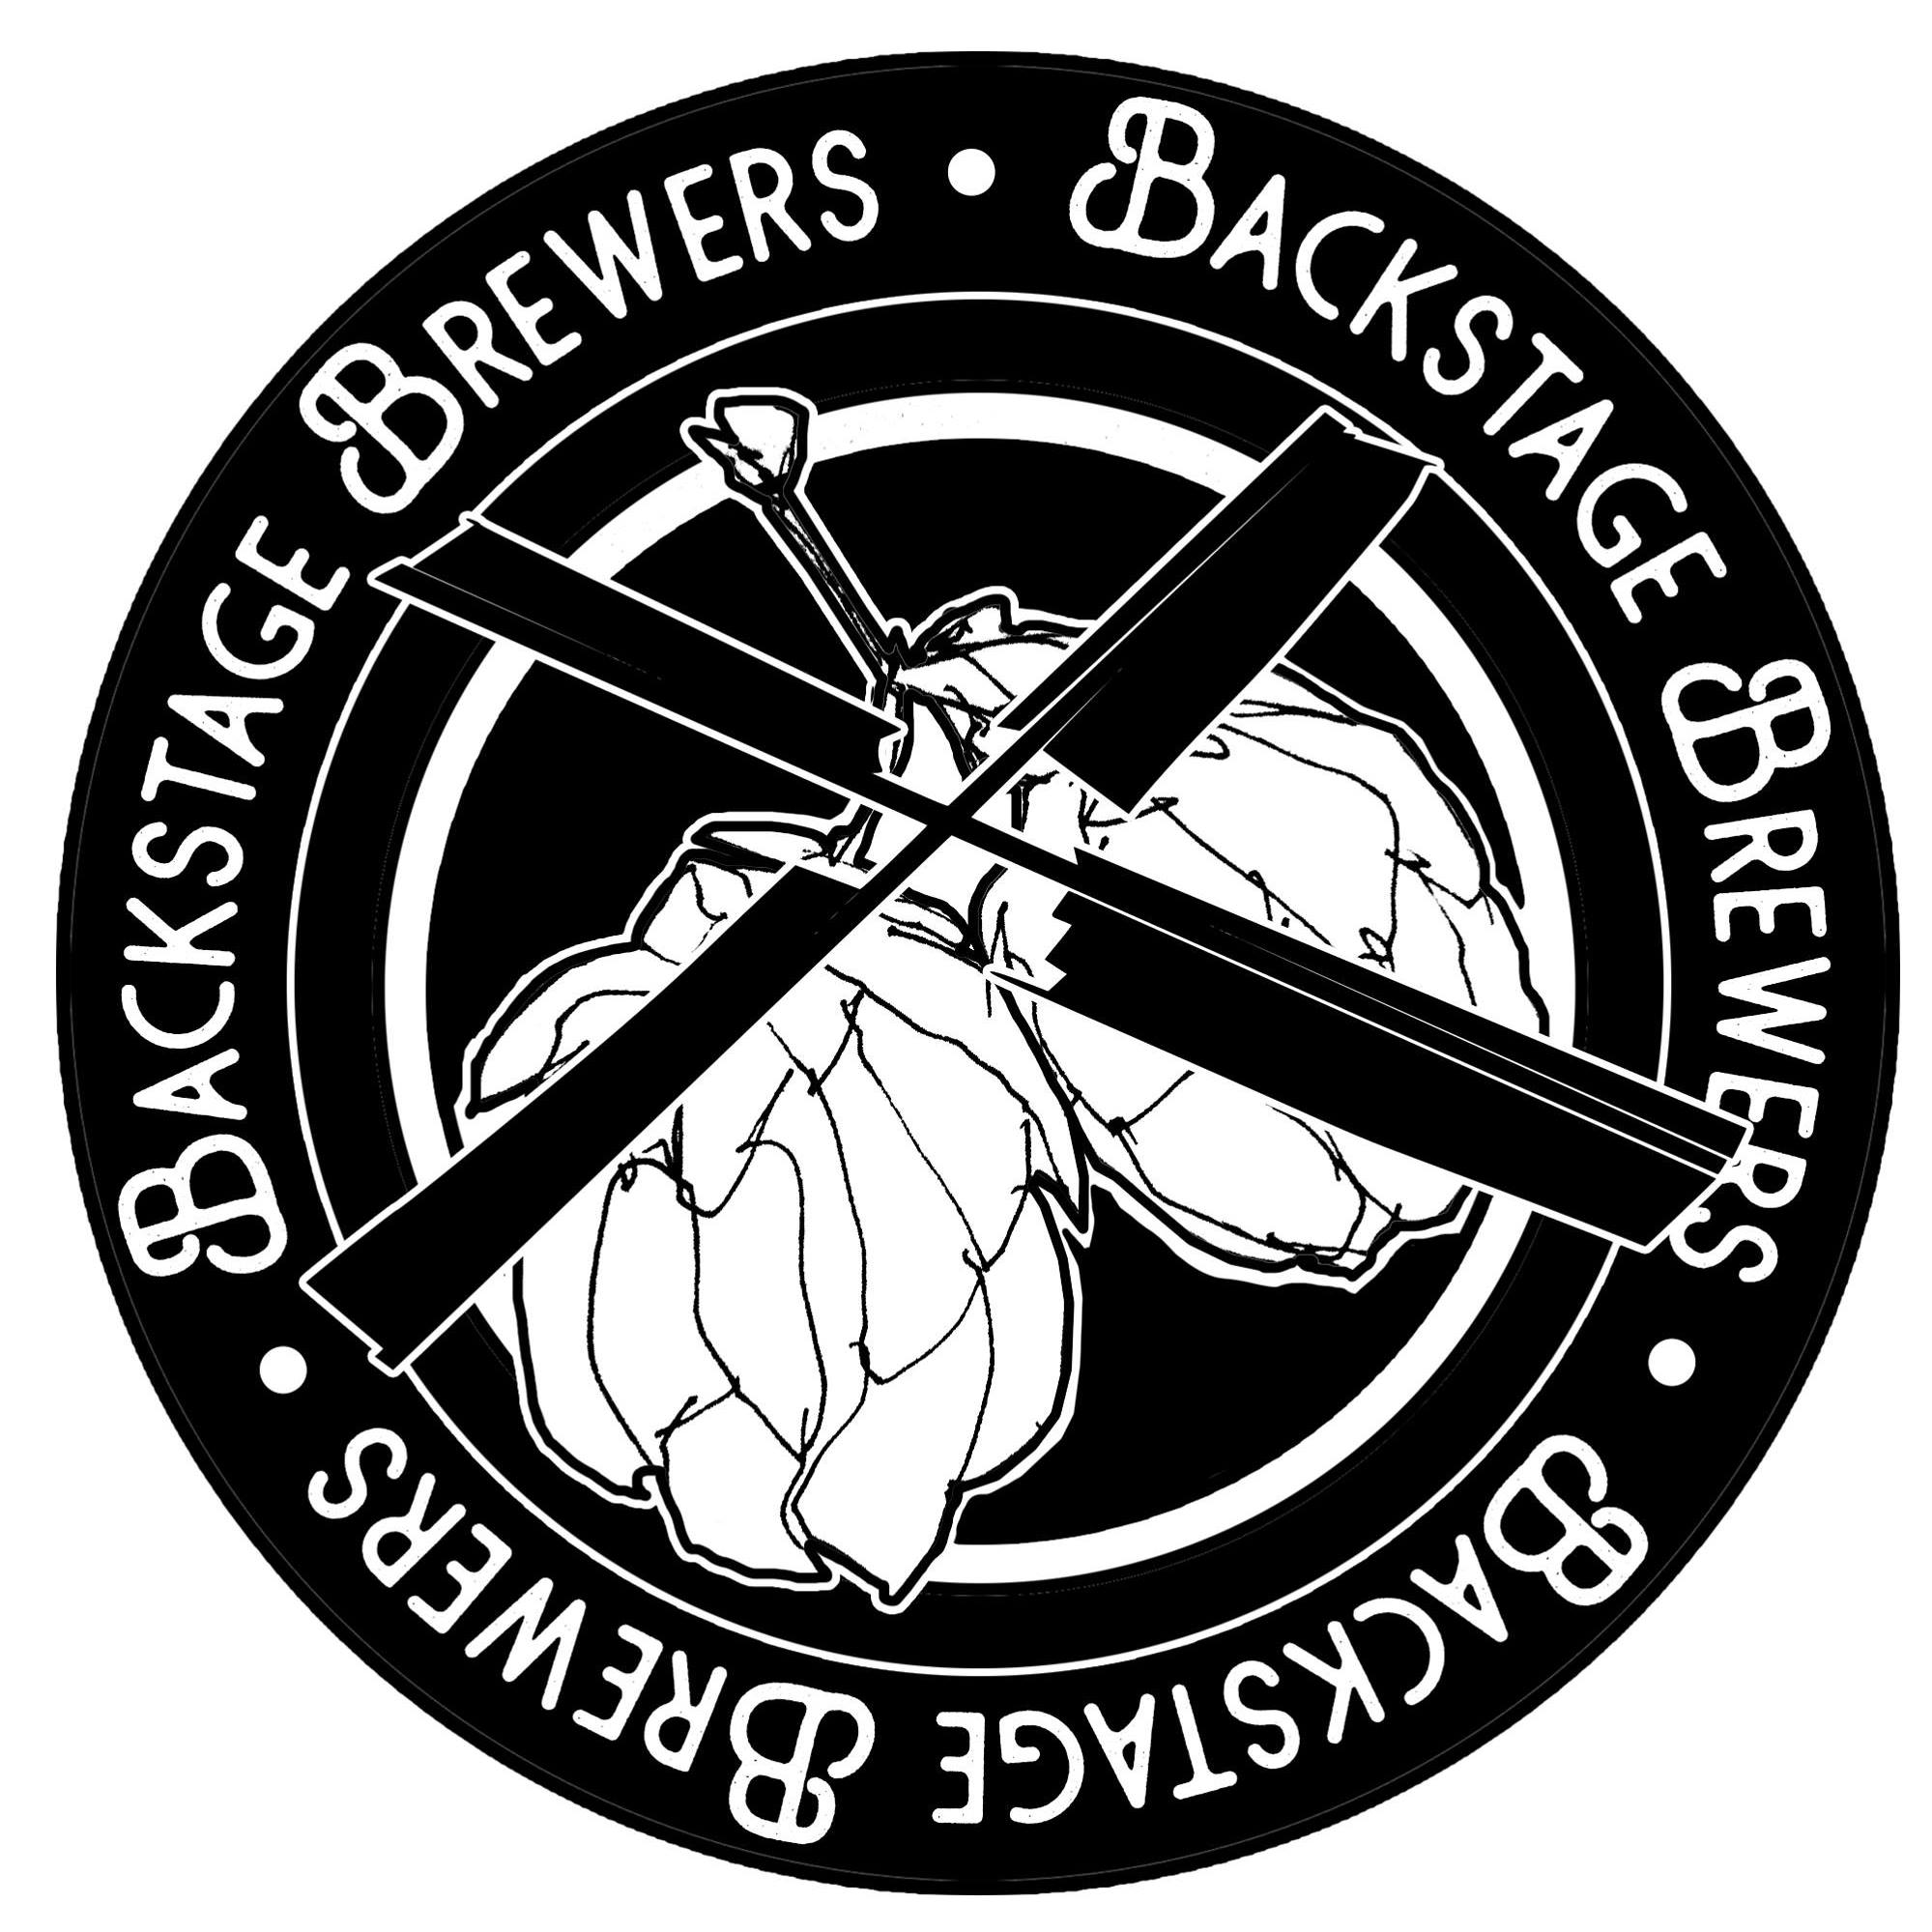 002103-20201106163051-backstagebrewers-2020-11.jpg